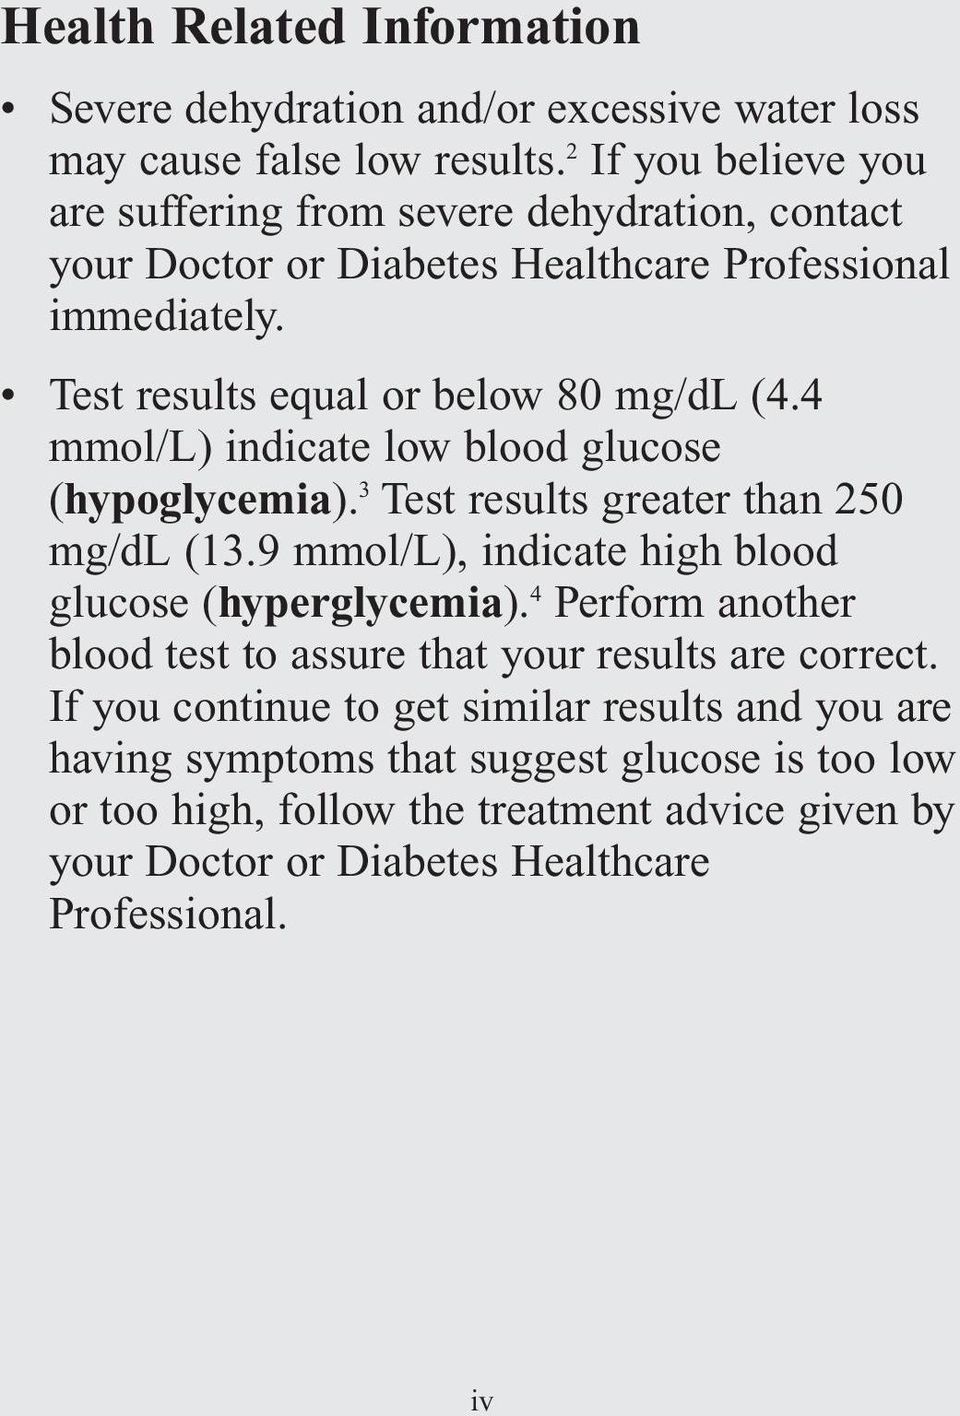 4 mmol/l) indicate low blood glucose (hypoglycemia). 3 Test results greater than 250 mg/dl (13.9 mmol/l), indicate high blood glucose (hyperglycemia).